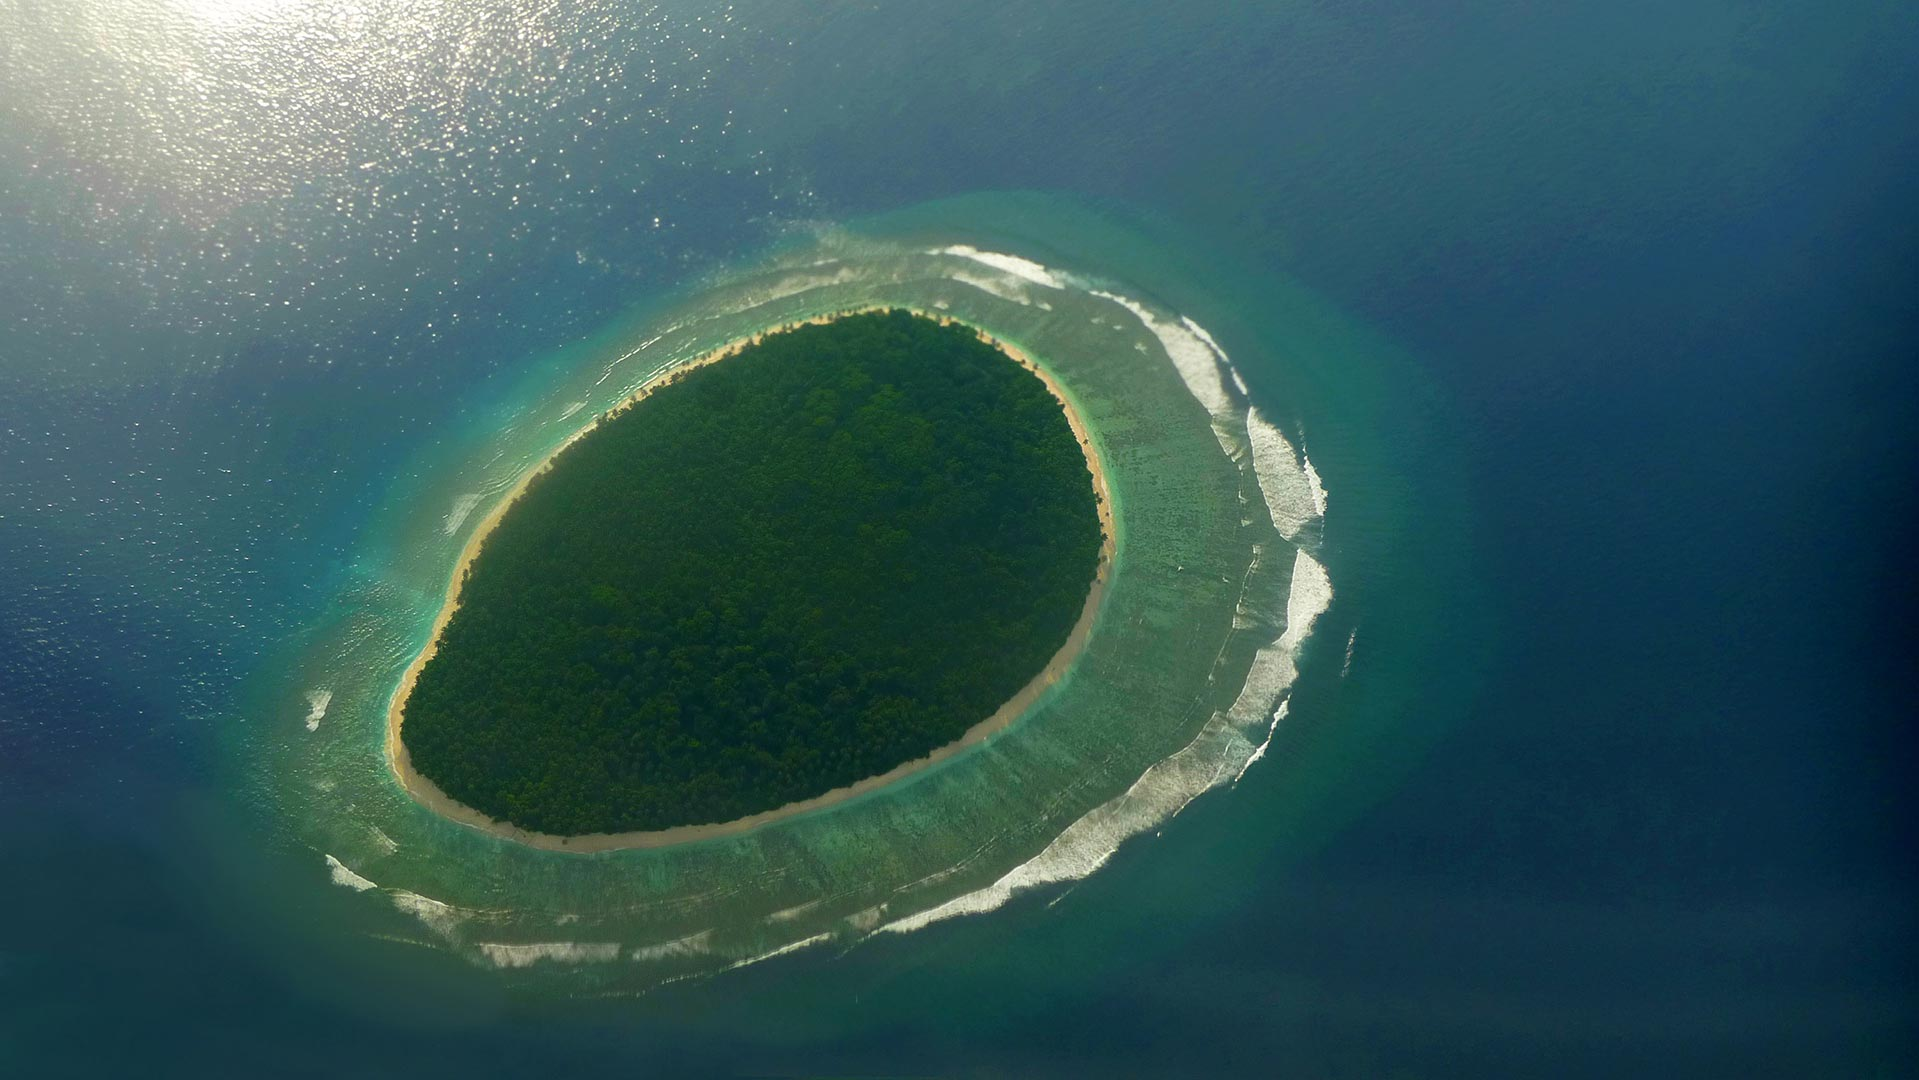 One of the most isolated islands in the world seeing from the sky